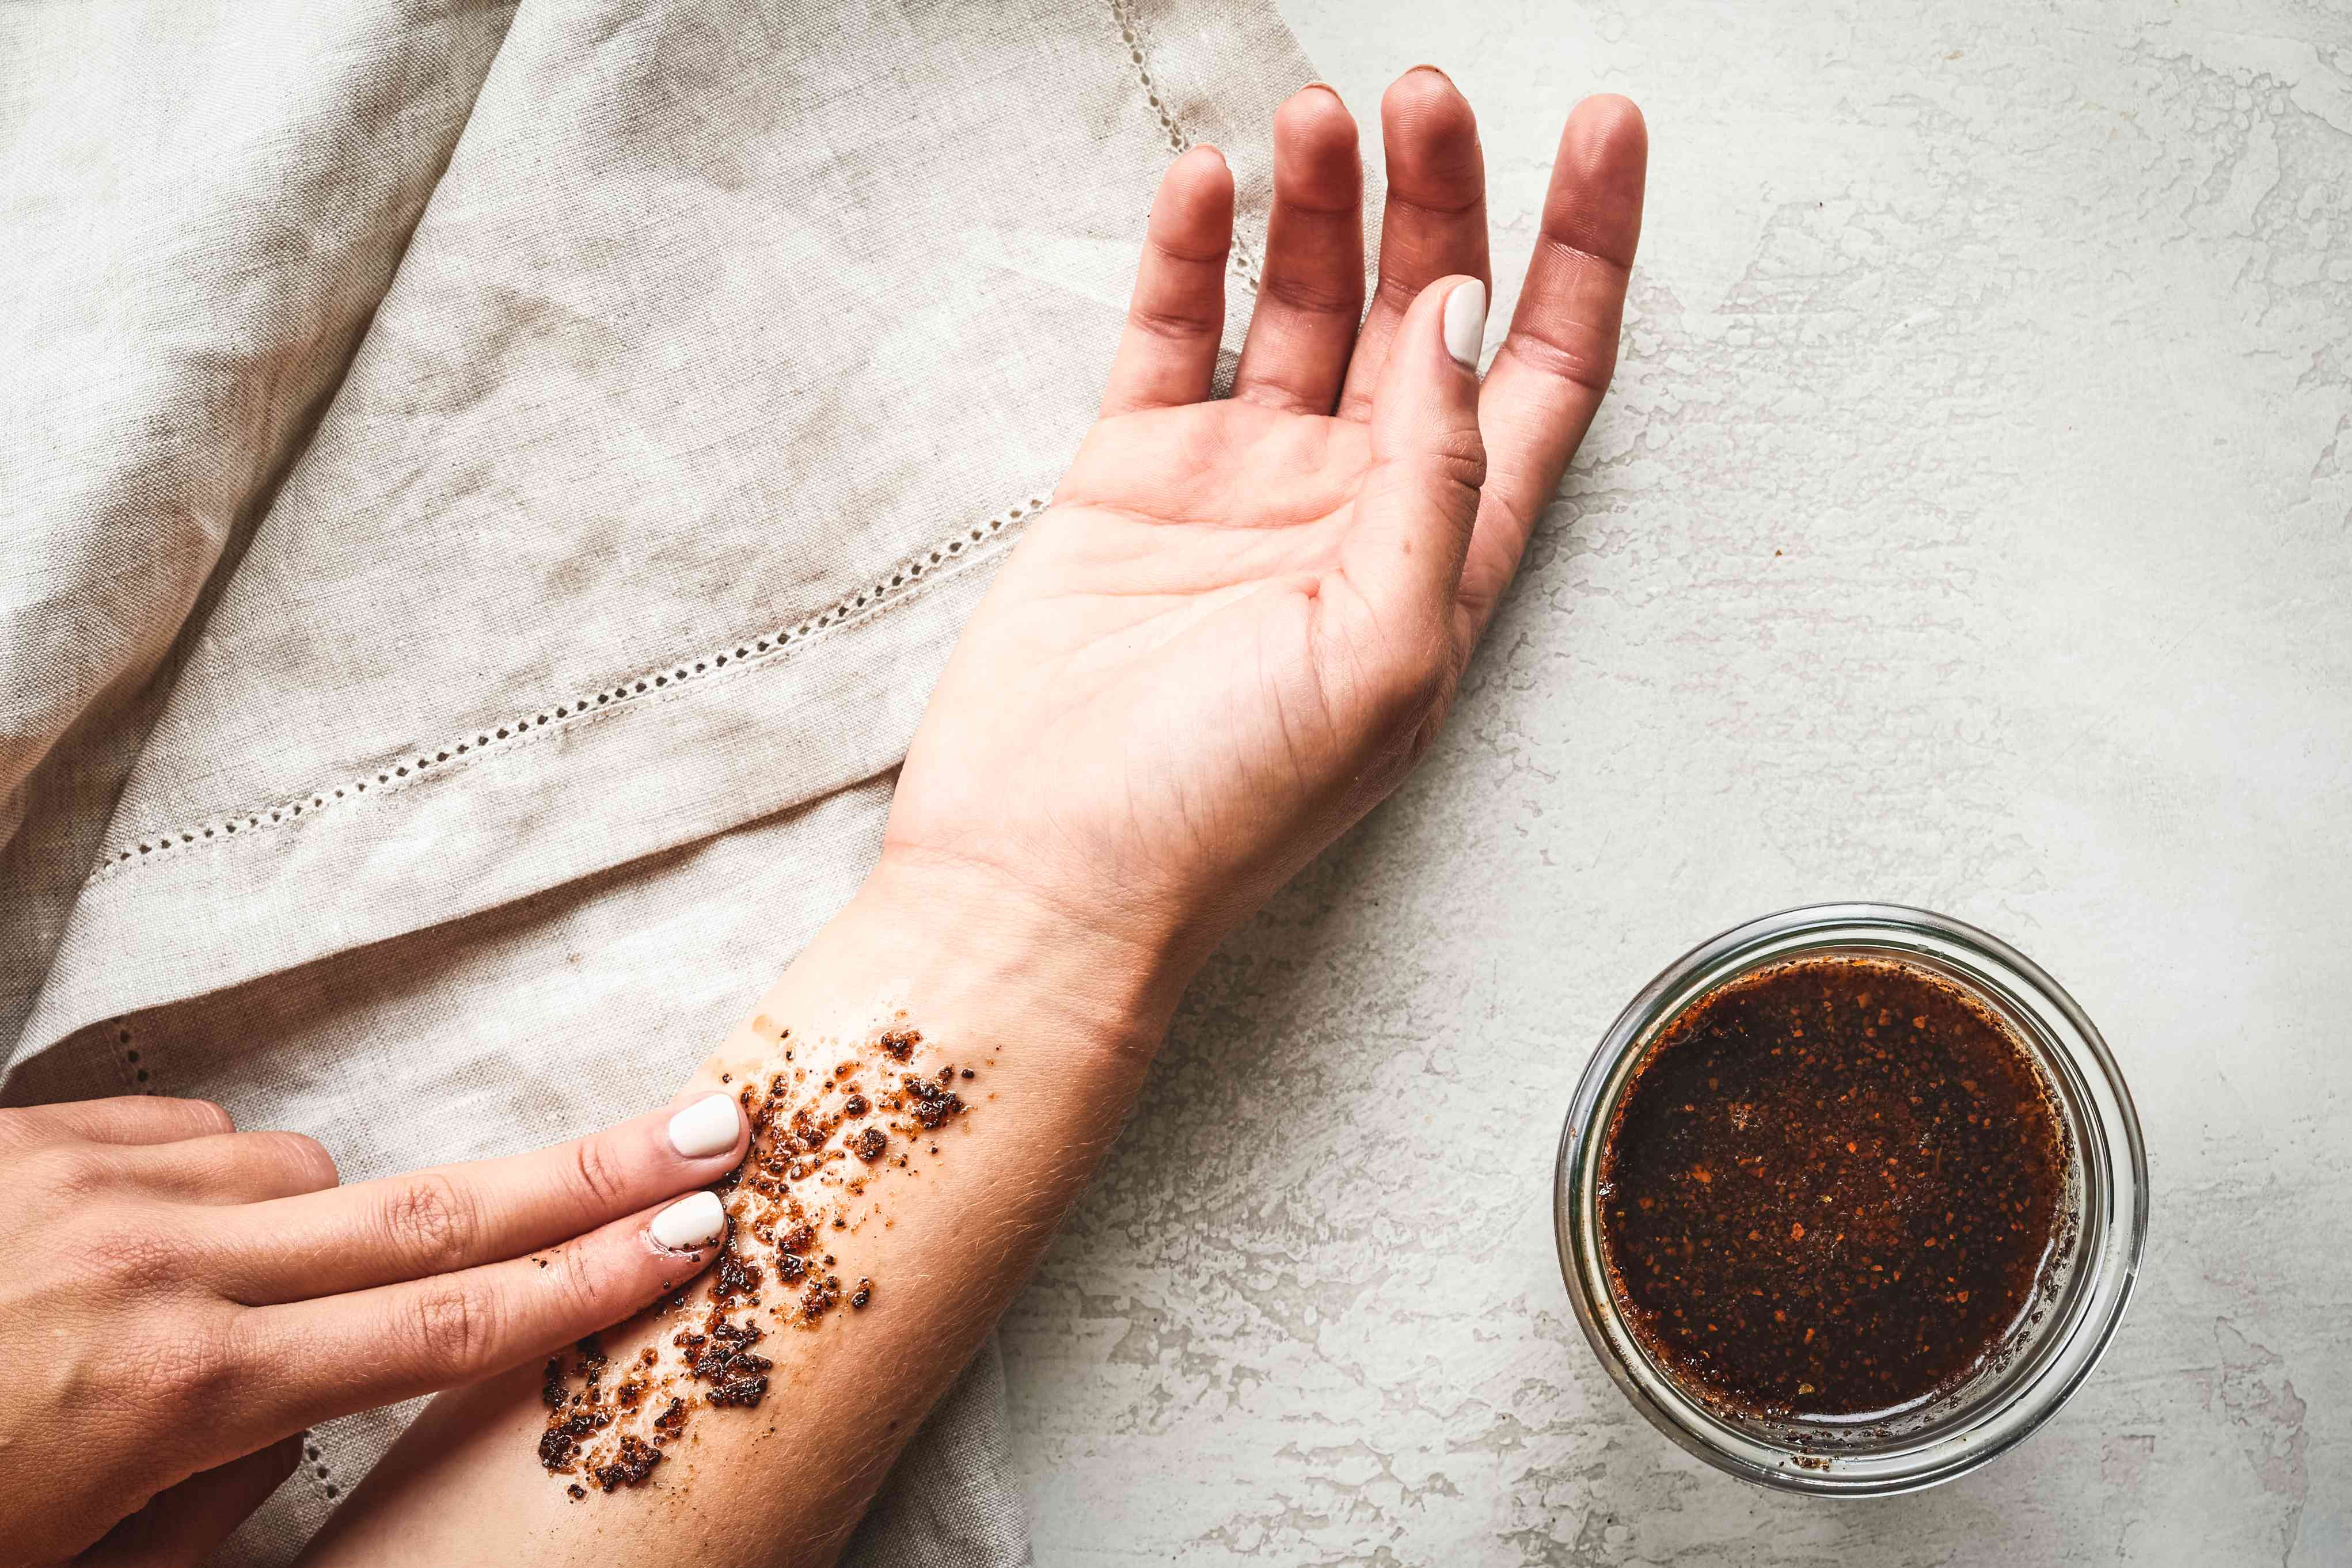 hands rub homemade coffee grounds-coconut oil on outstretched forearm